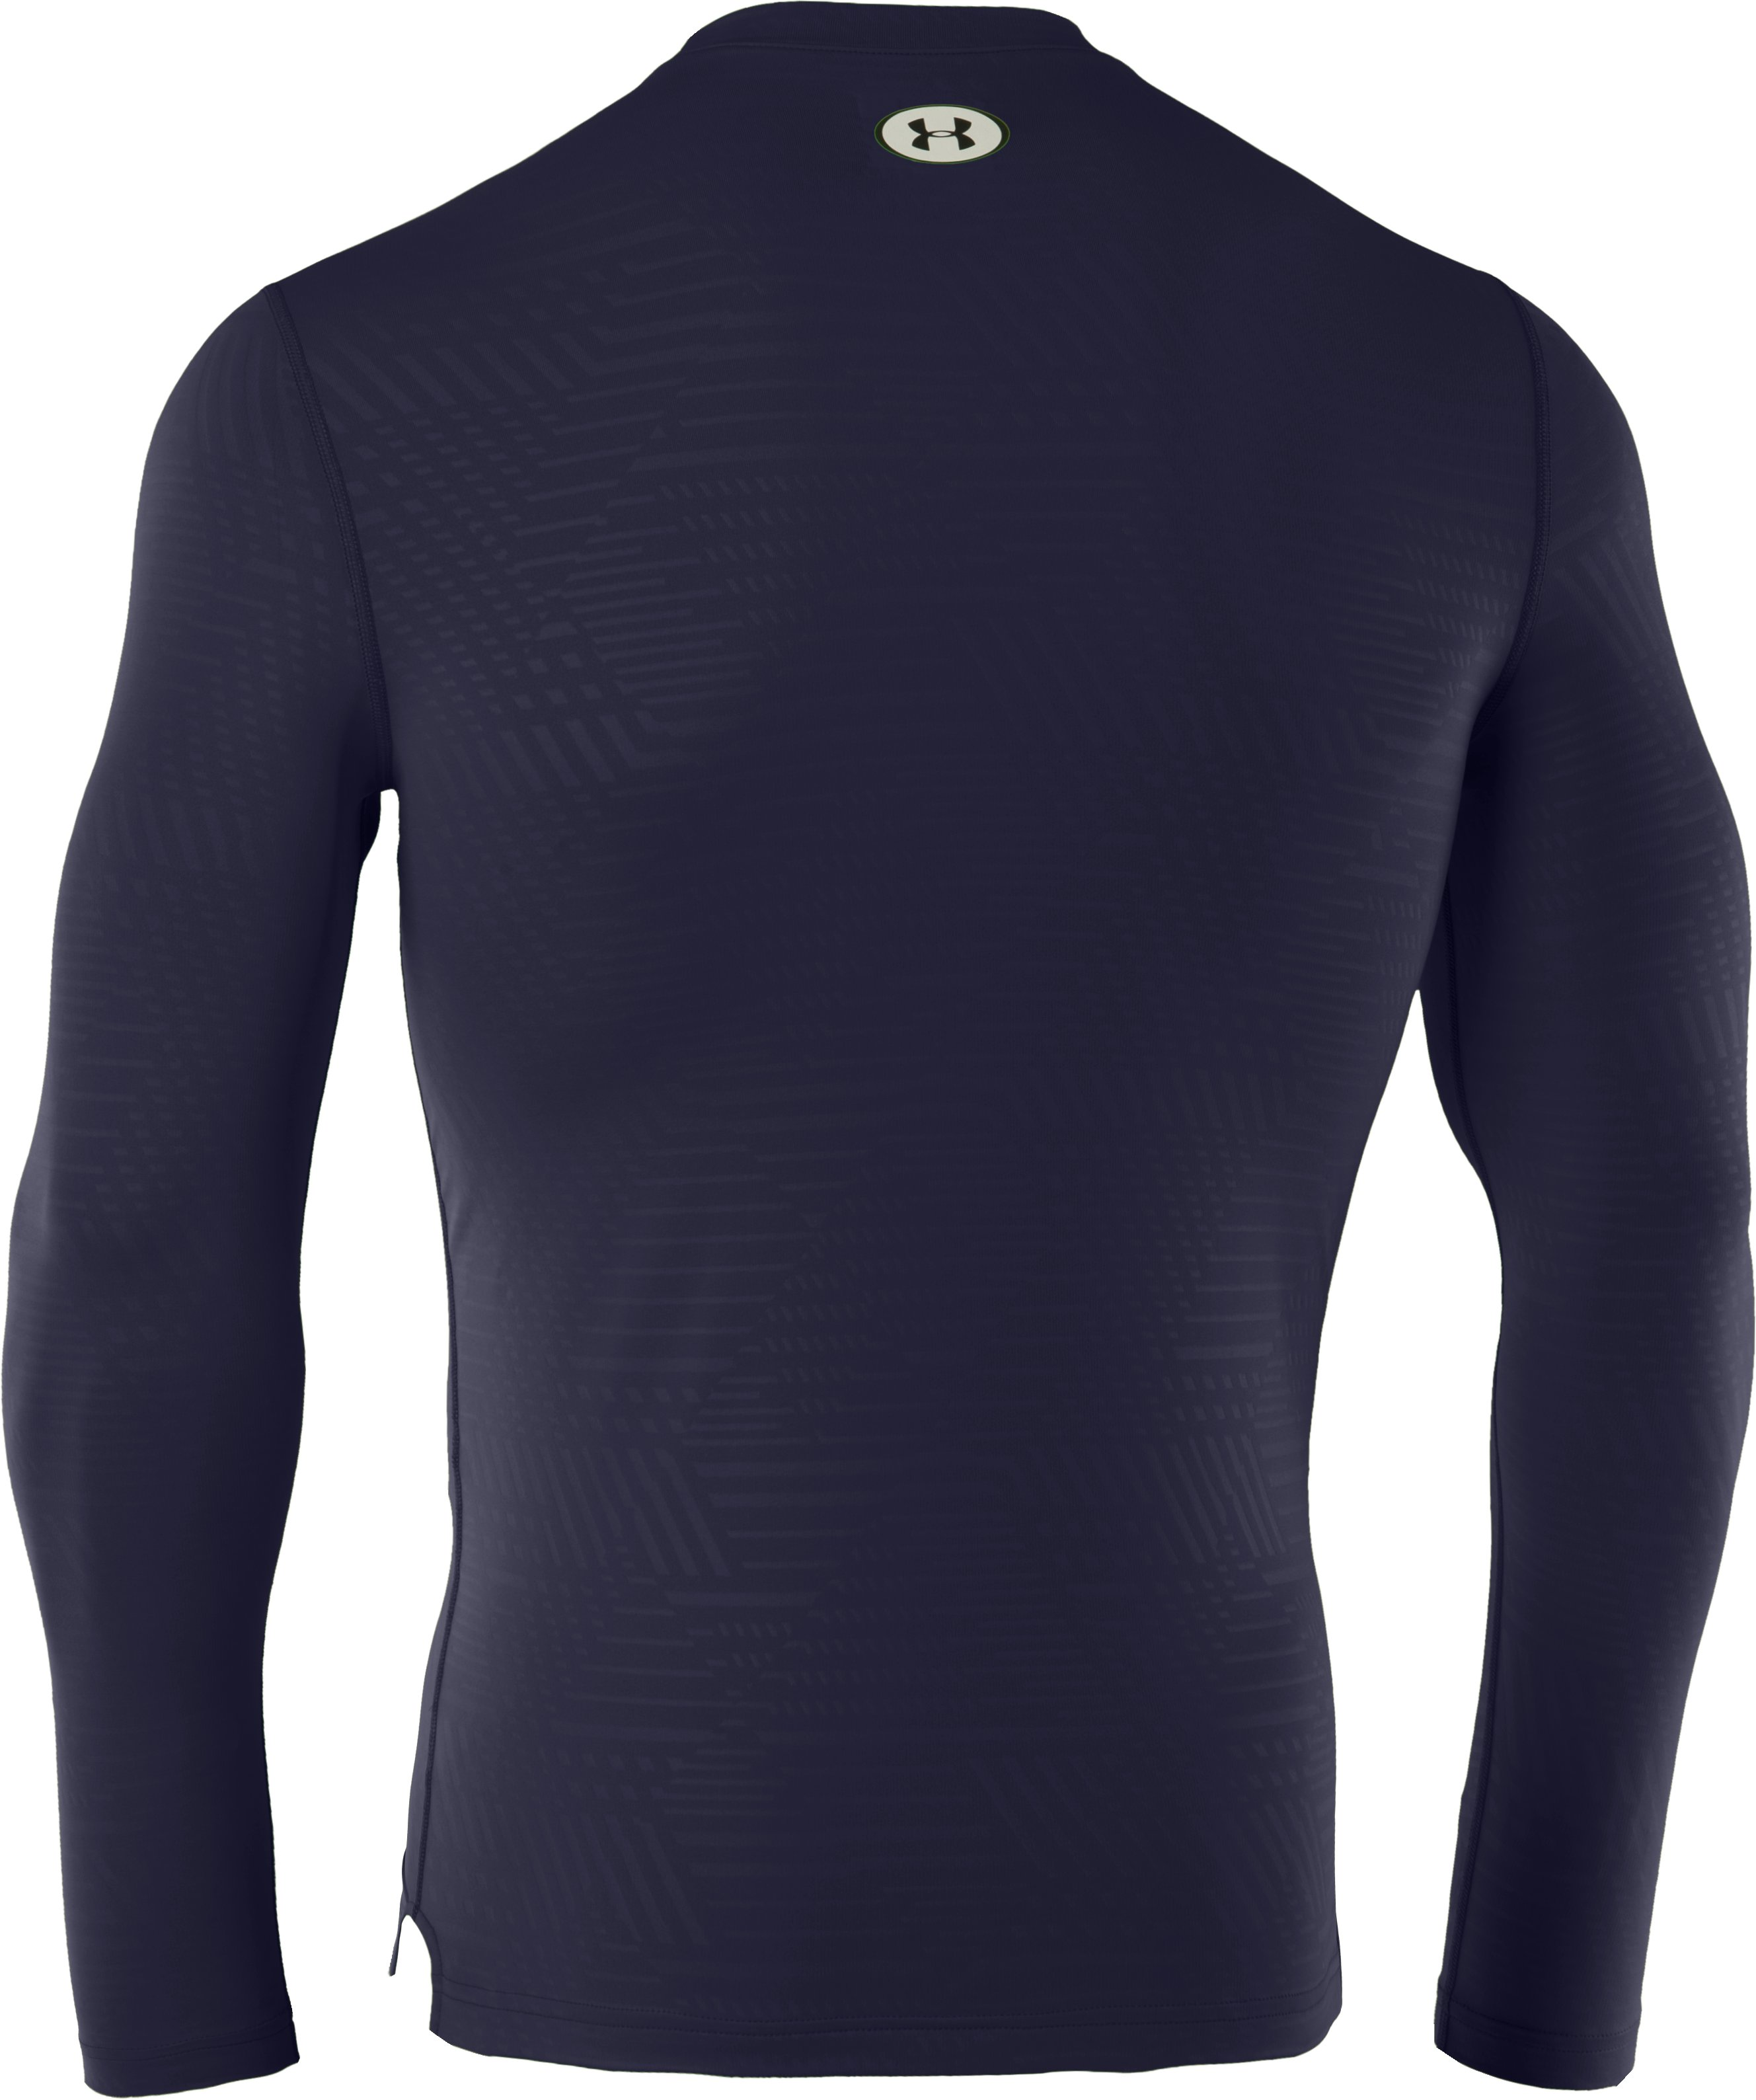 Men's ColdGear® Infrared Evo Printed Fitted Crew, Midnight Navy